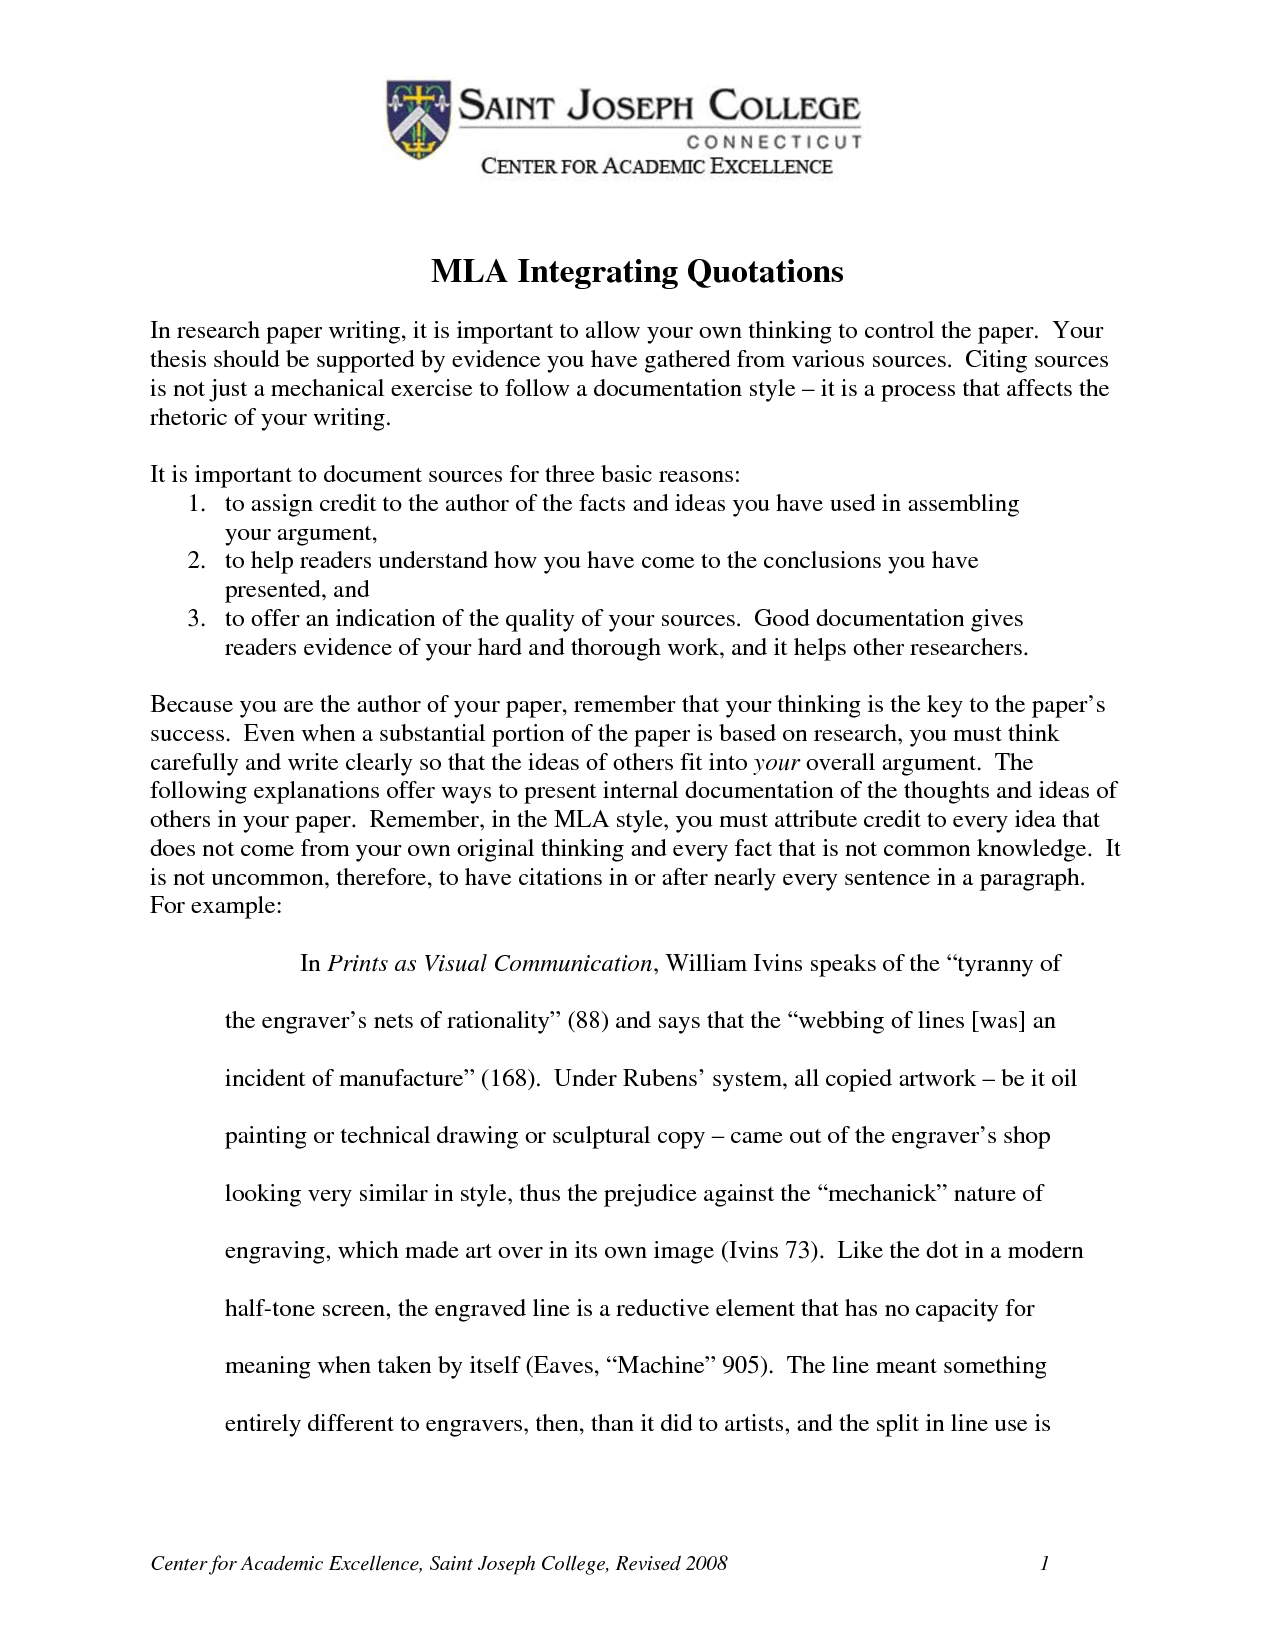 quotes in essay mla